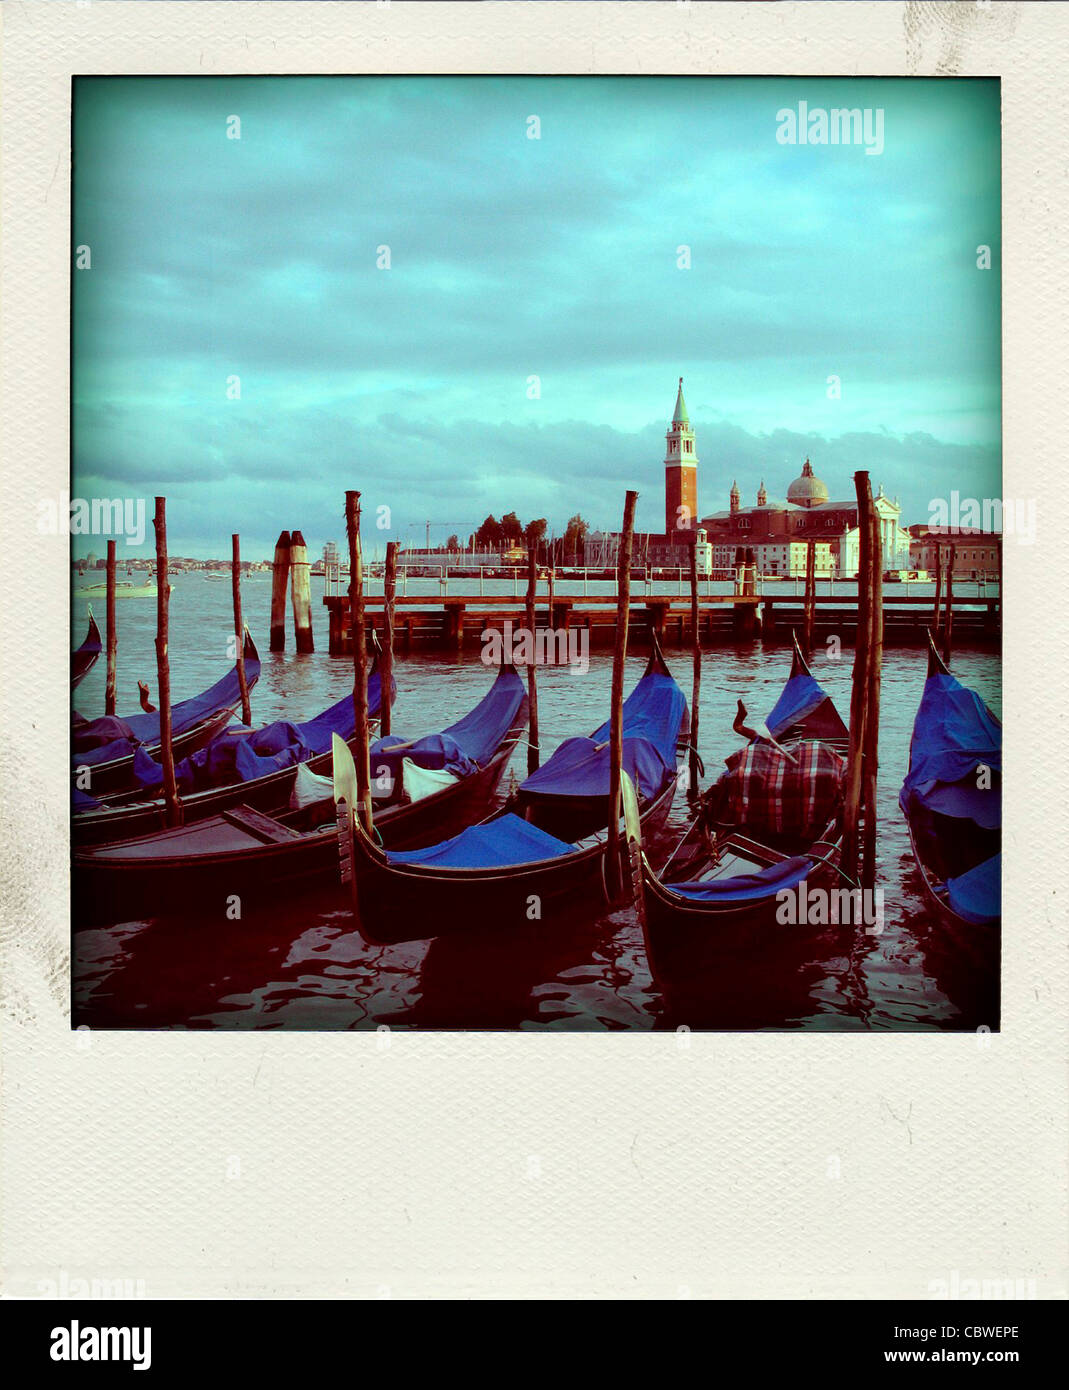 Vintage polaroid photo of Gondolas in Venice, Italy, Europe - Stock Image